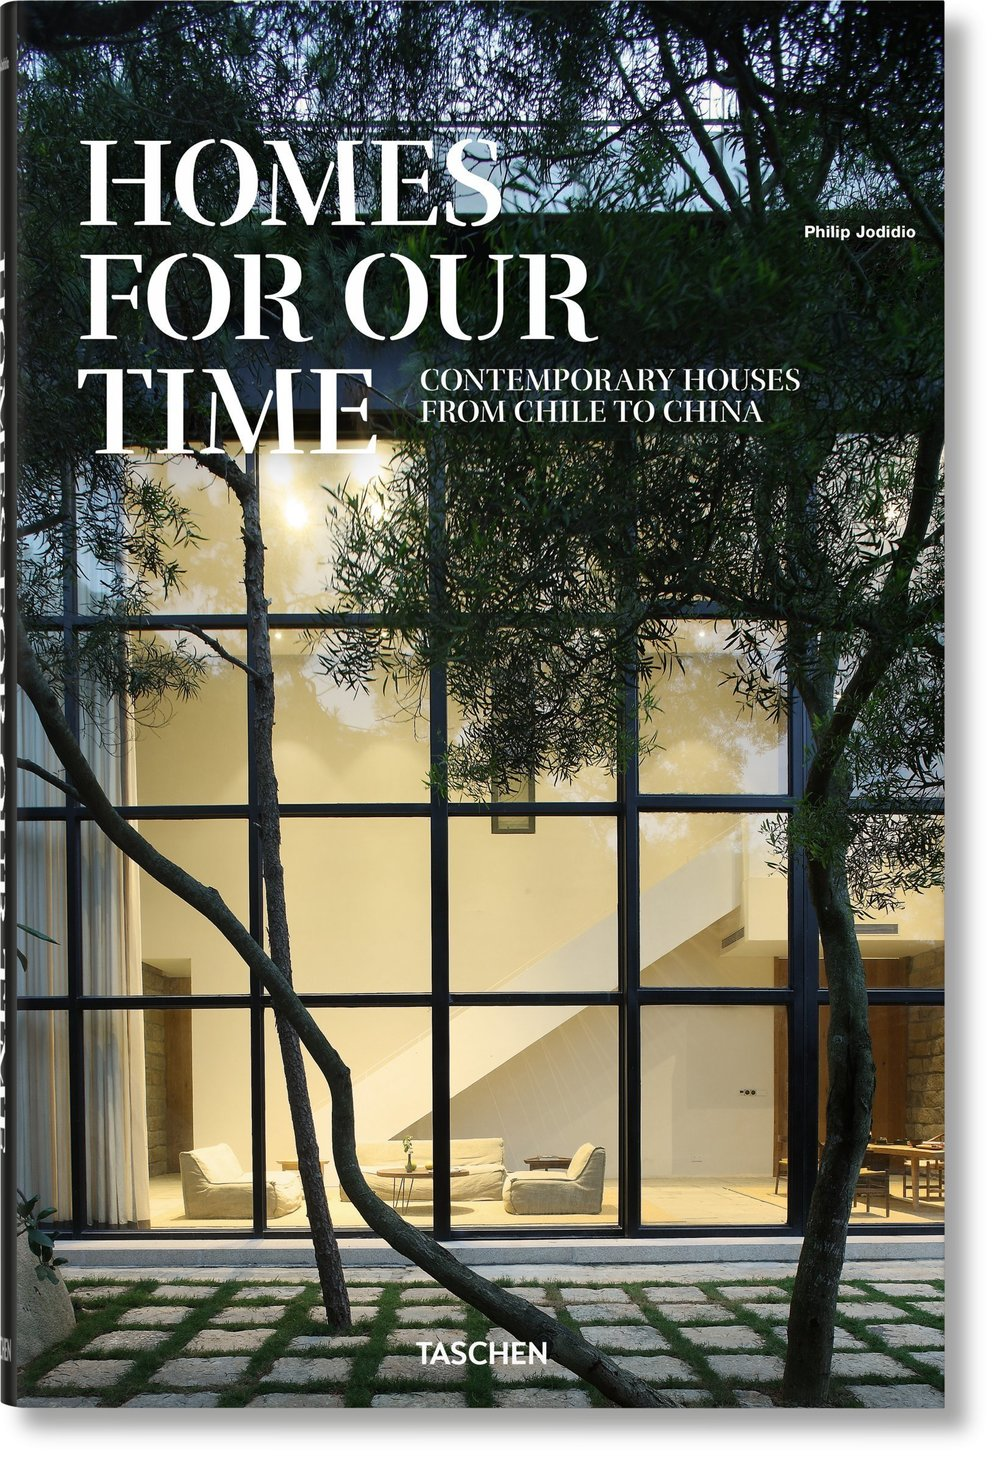 Homes for our time Taschen.jpg